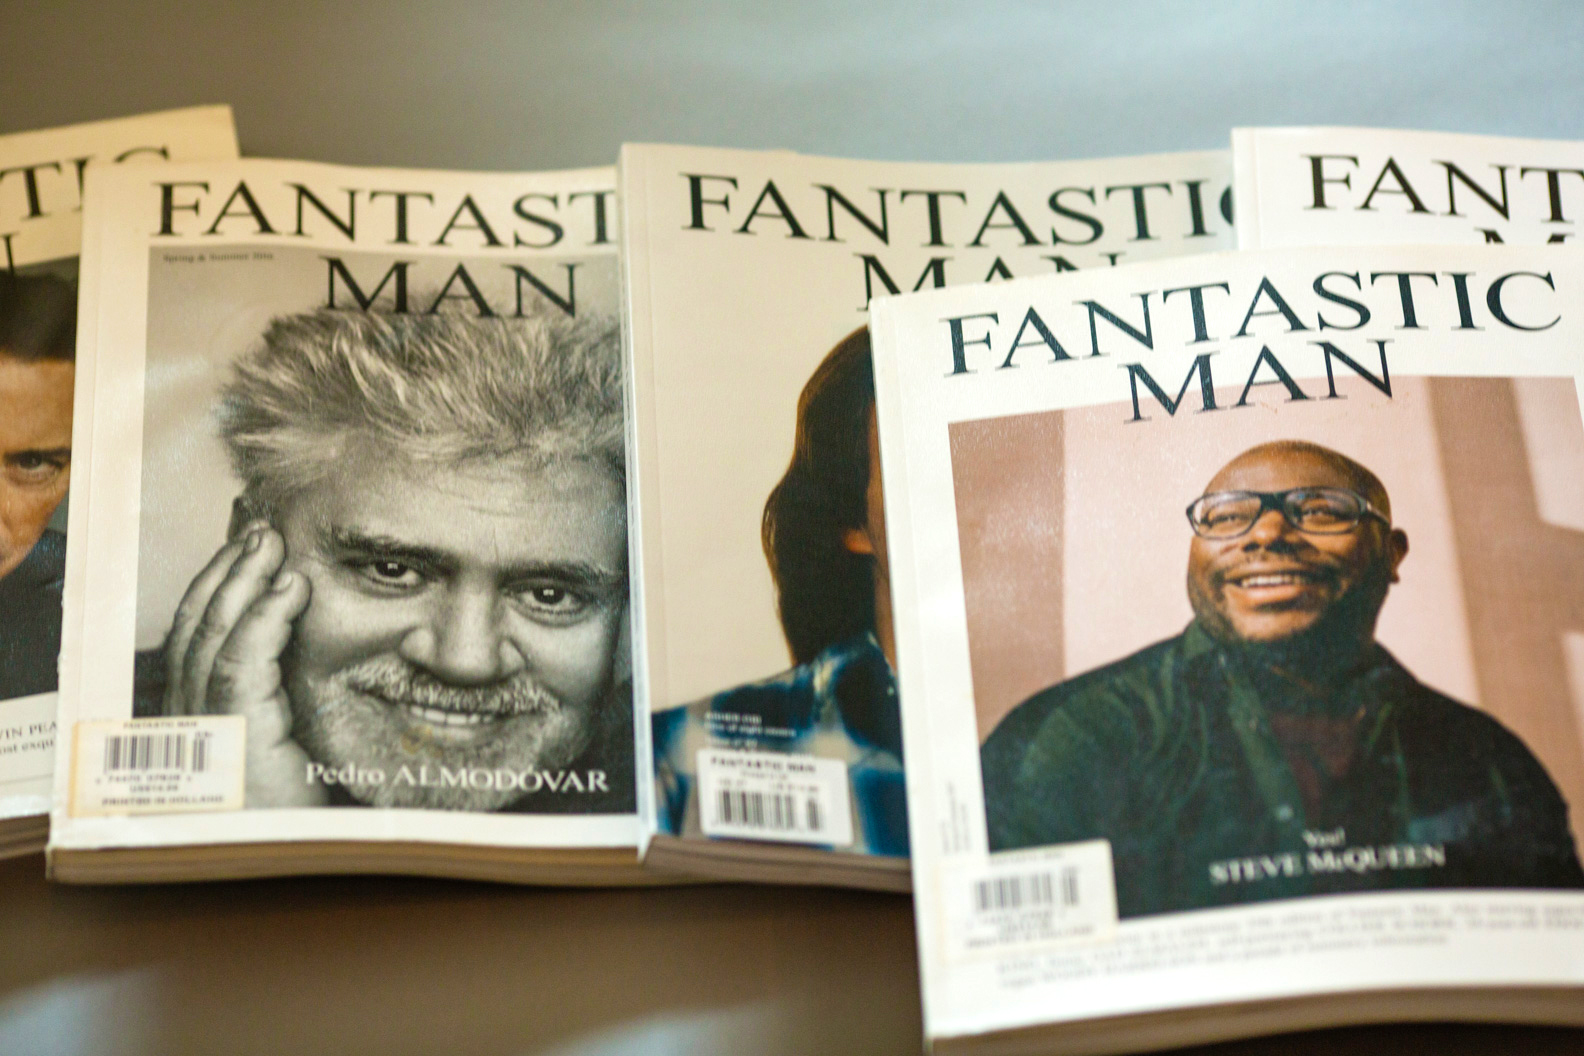 Fantastic Man: For Young and Old.